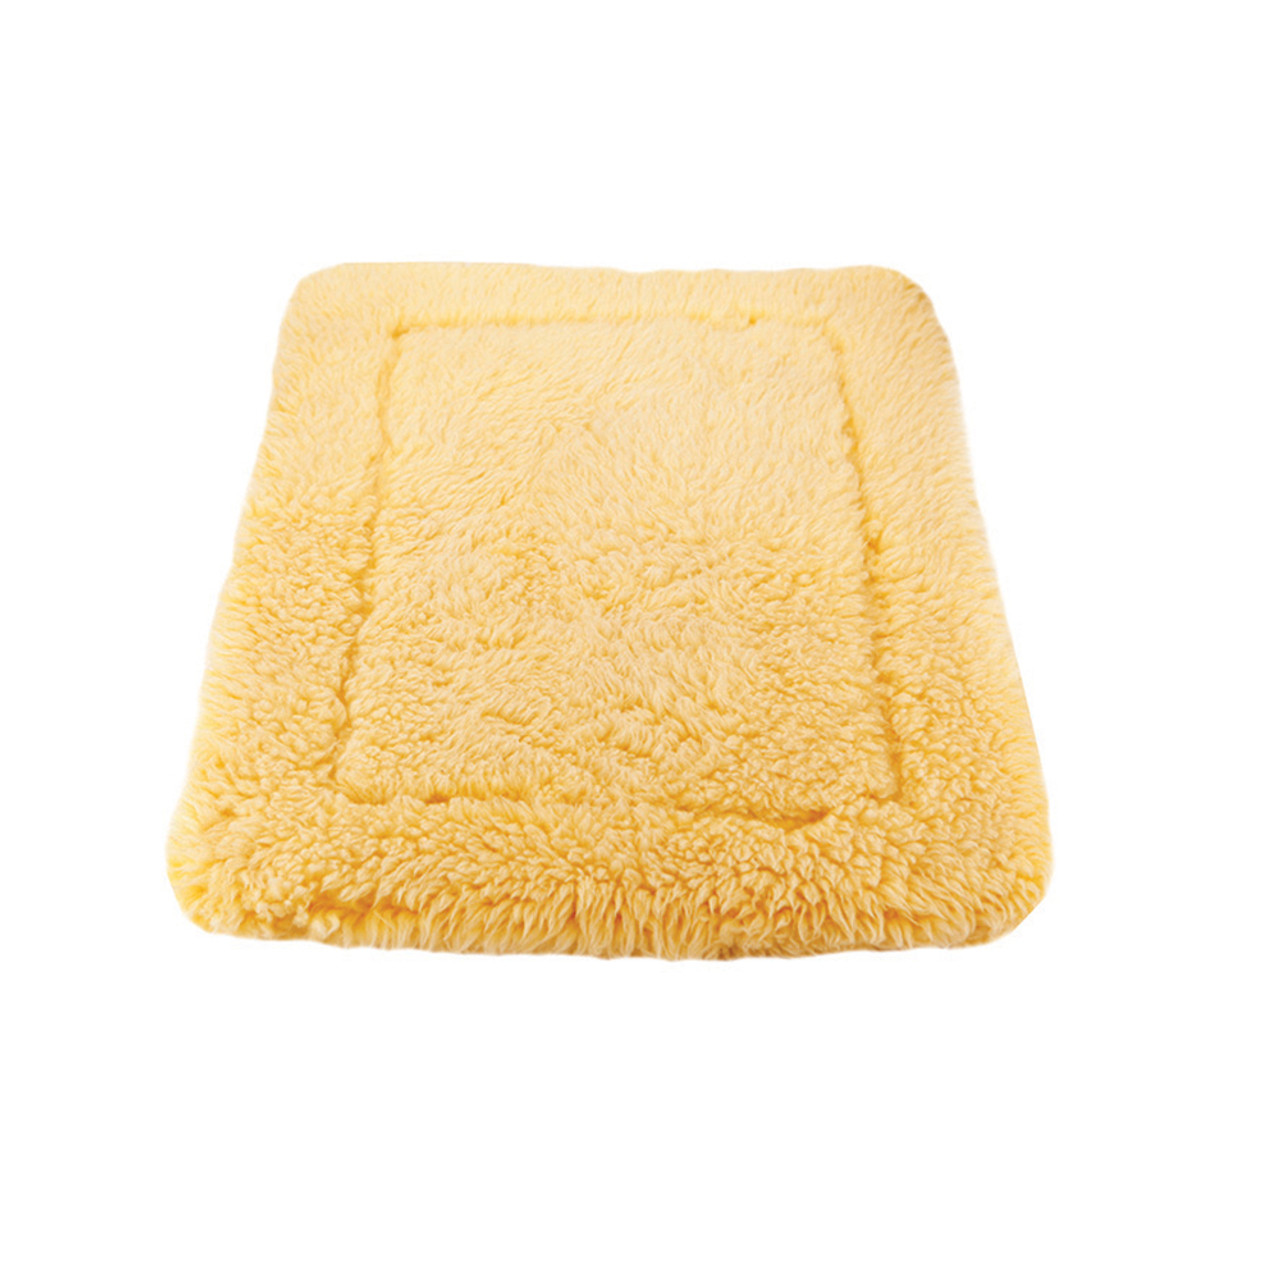 HuggleHounds HuggleFleece Natural Pet Mat - Front